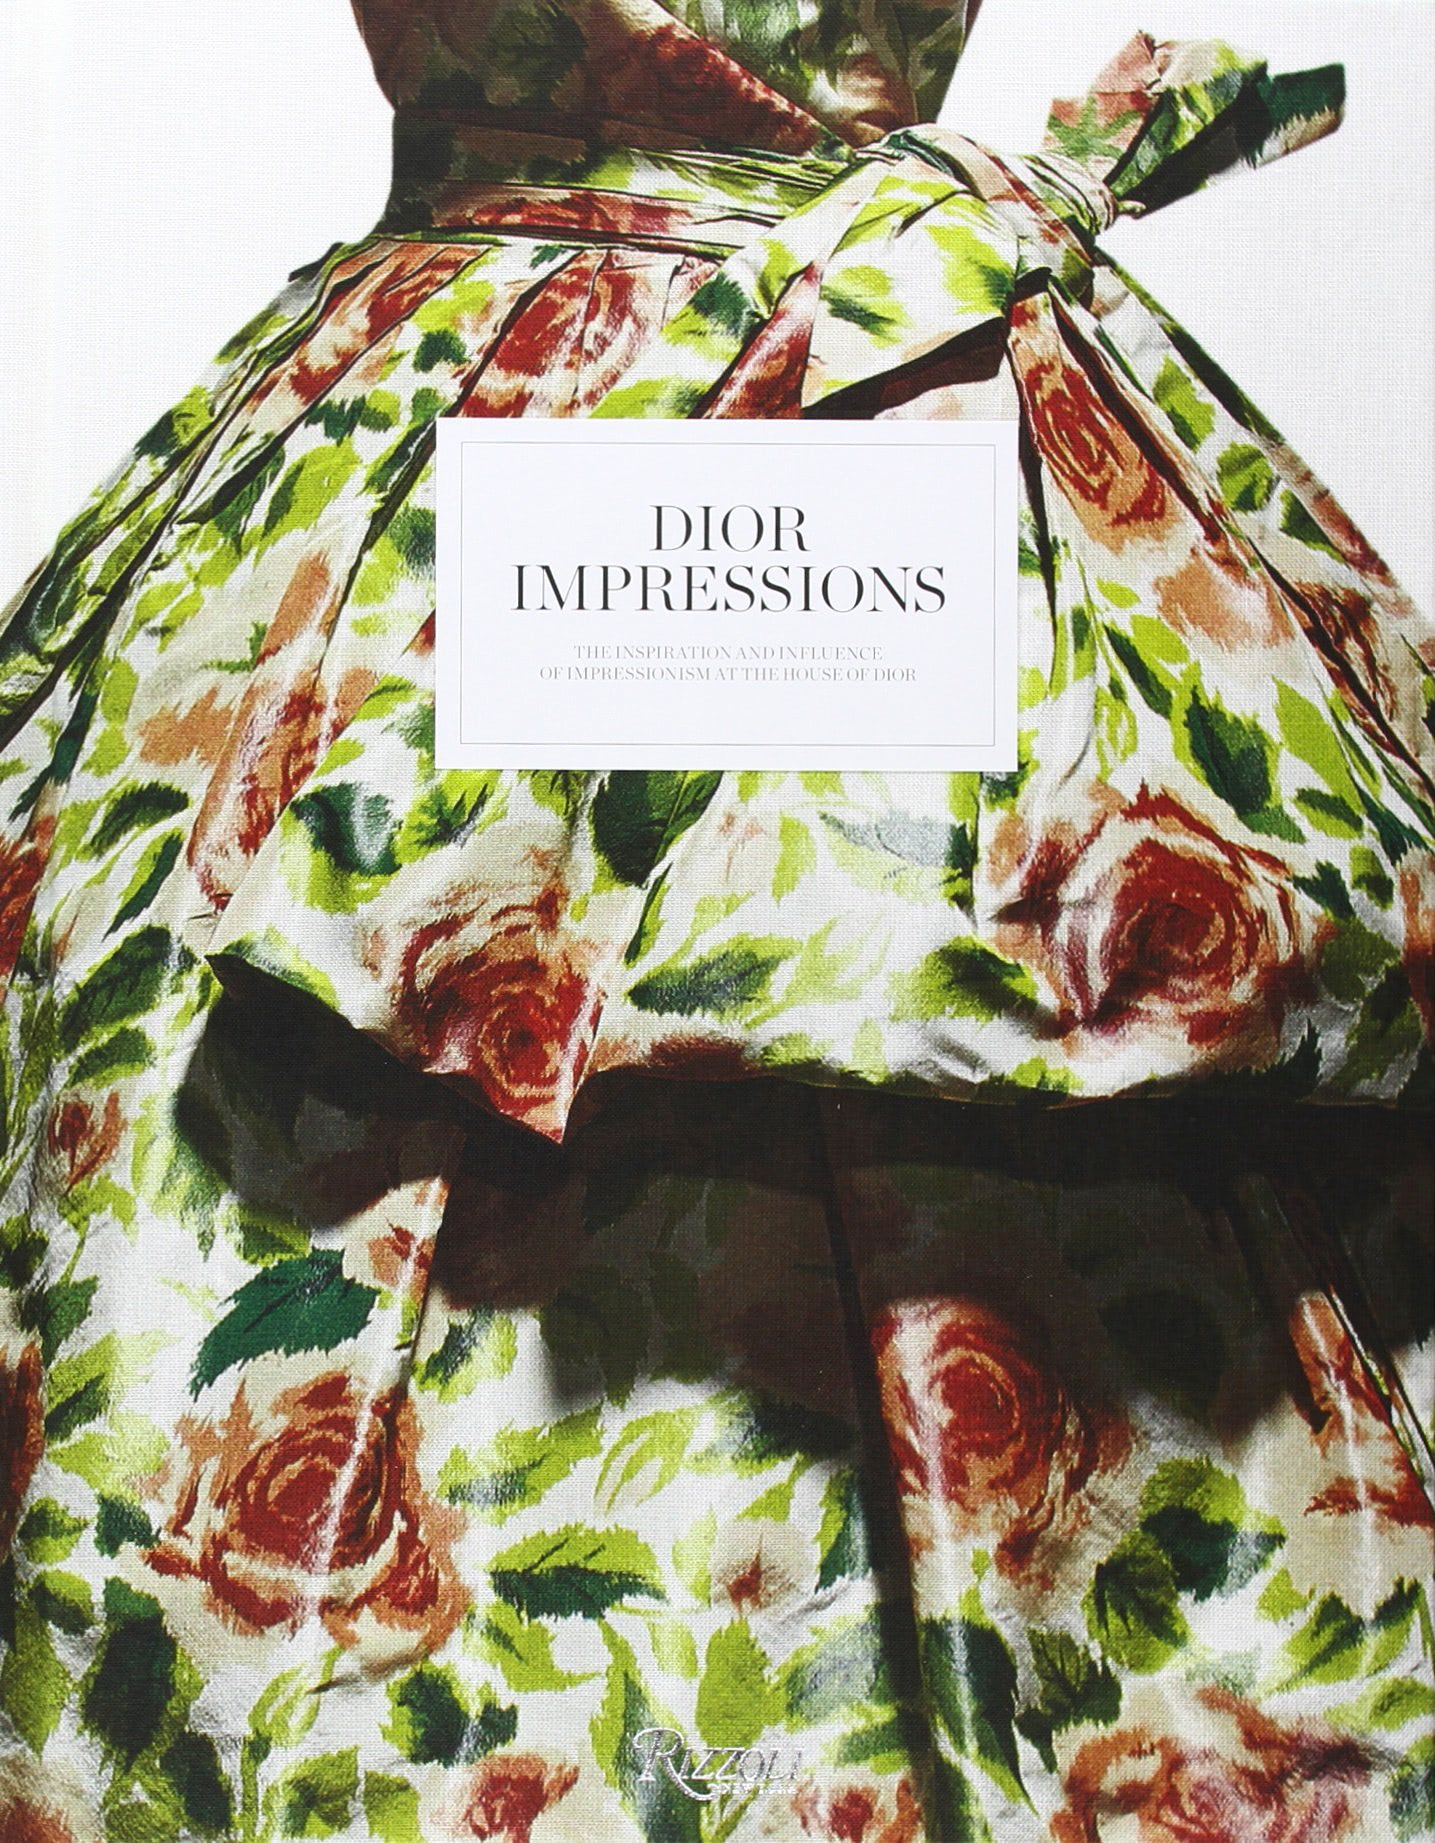 Dior Impressions: The Inspiration and Influence of Impressionism at the House of Dior by  Florence Muller, Philippe Thiebaut, Farid Chenoune, Barbara Jeauffroy-Mairet and Brigitte Richart